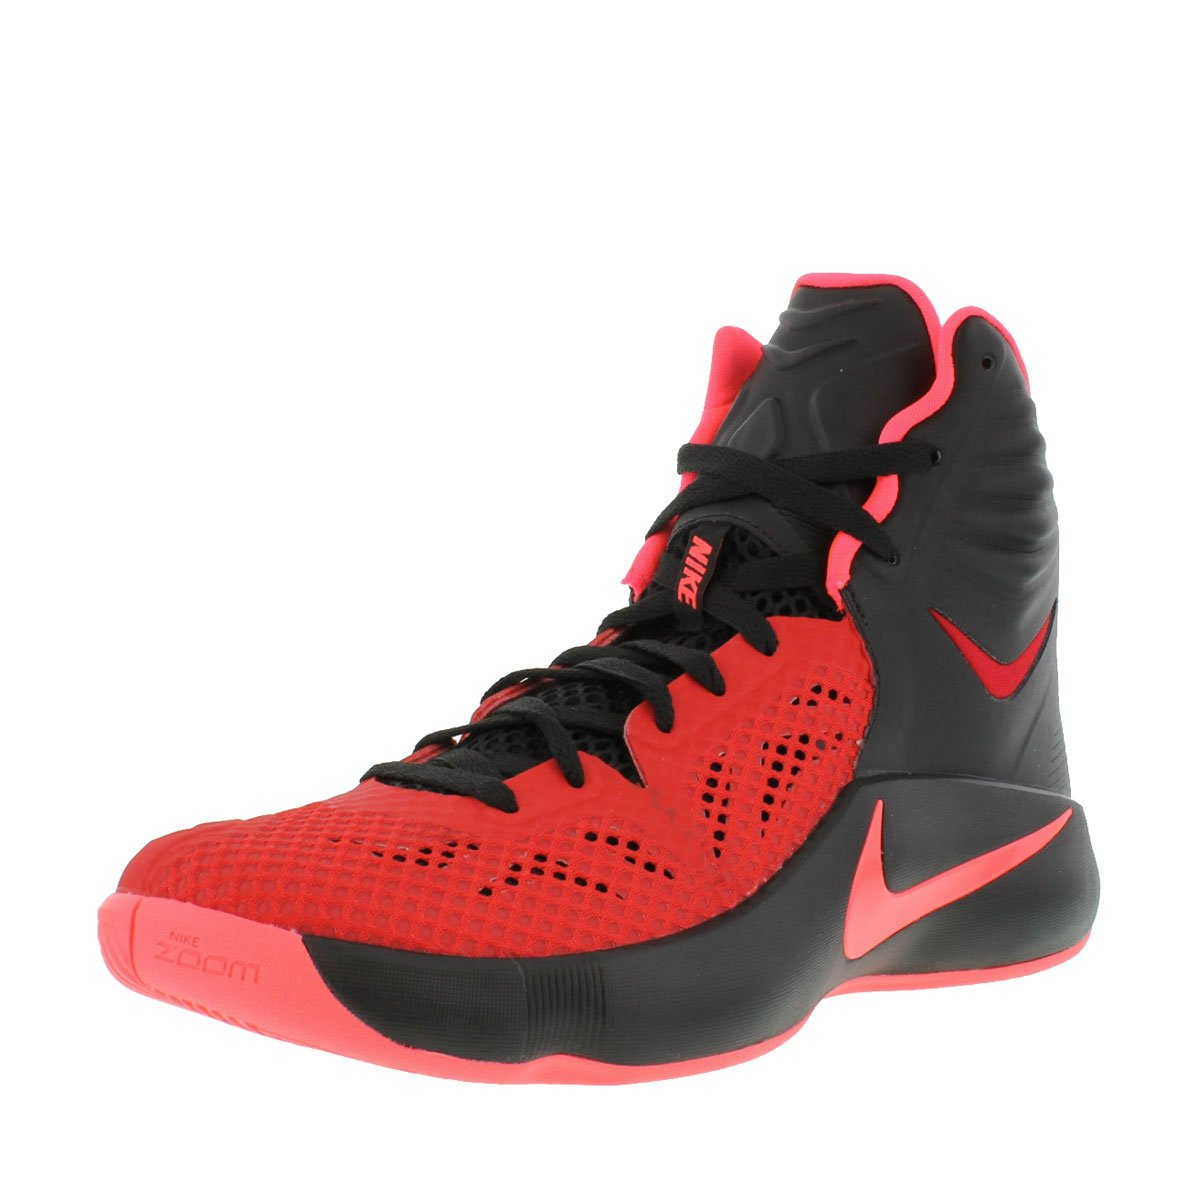 the best attitude e3f7b 6f039 nike zoom hyperfuse 2014 mens hi top basketball trainers 684591 sneakers  shoes (uk 7.5 us 8.5 eu 42, black hyper punch university red 066)   Amazon.co.uk  ...